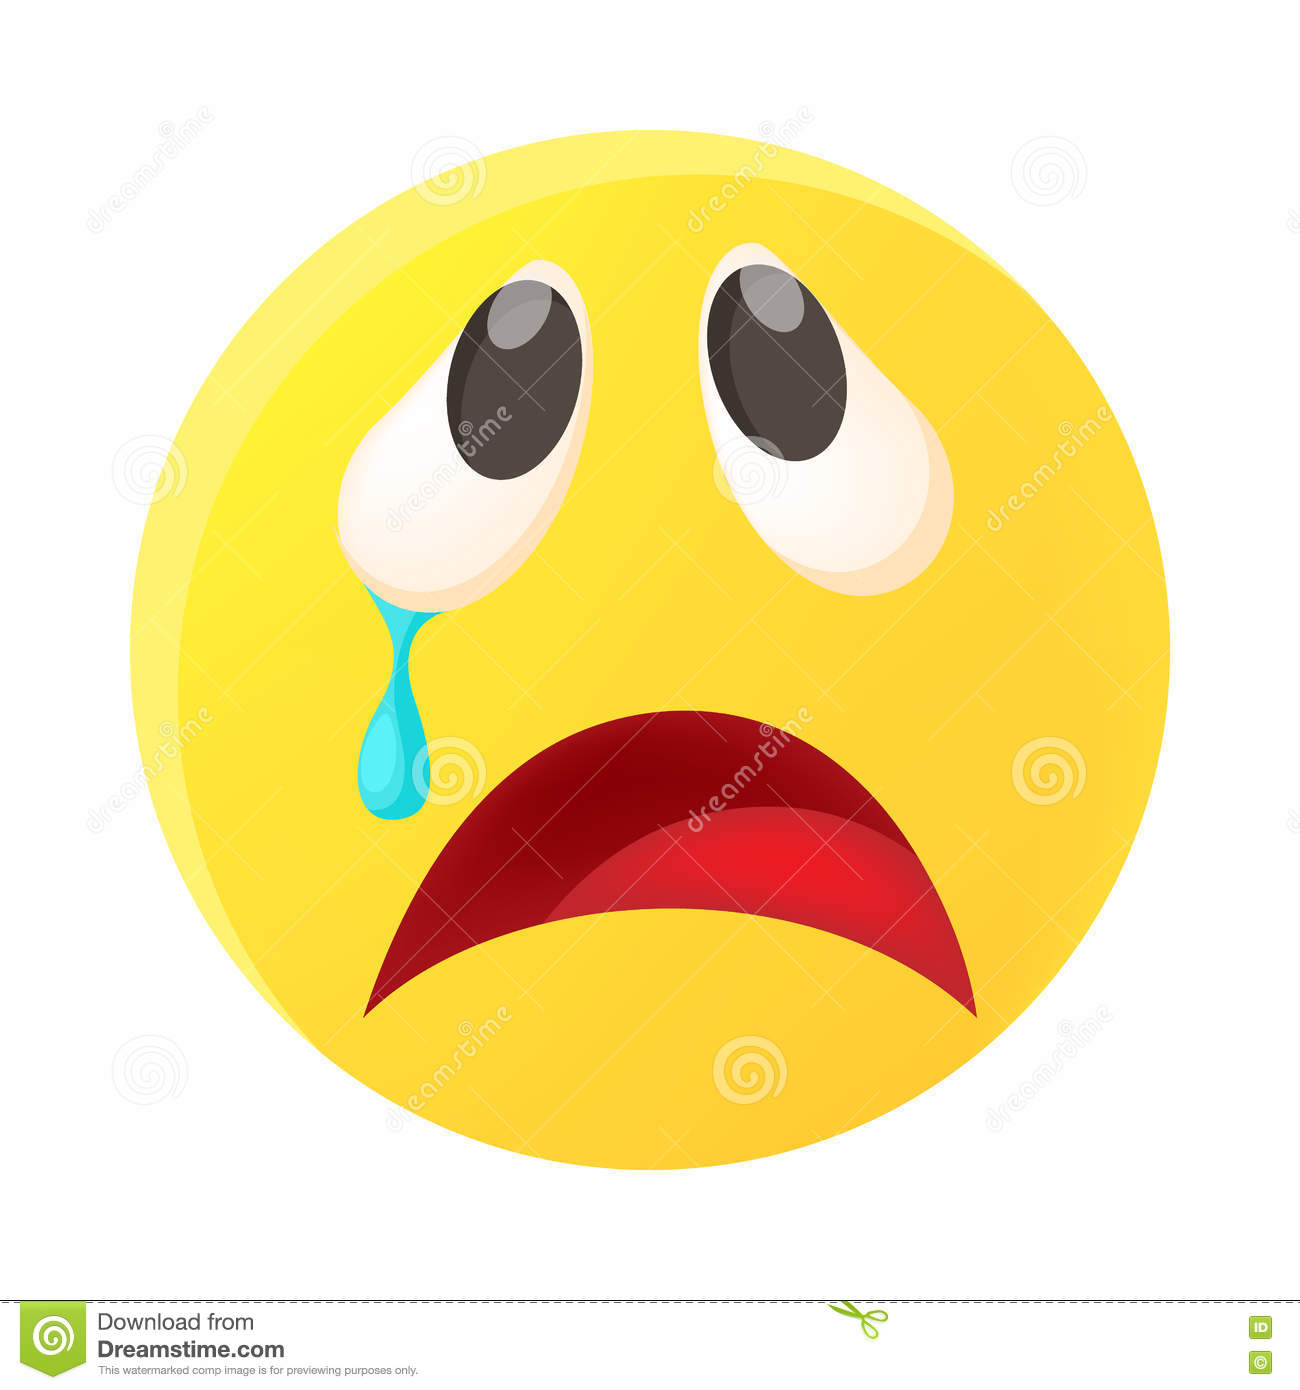 Crying face emoticon with tear icon cartoon style stock vector crying face emoticon with tear icon cartoon style voltagebd Images